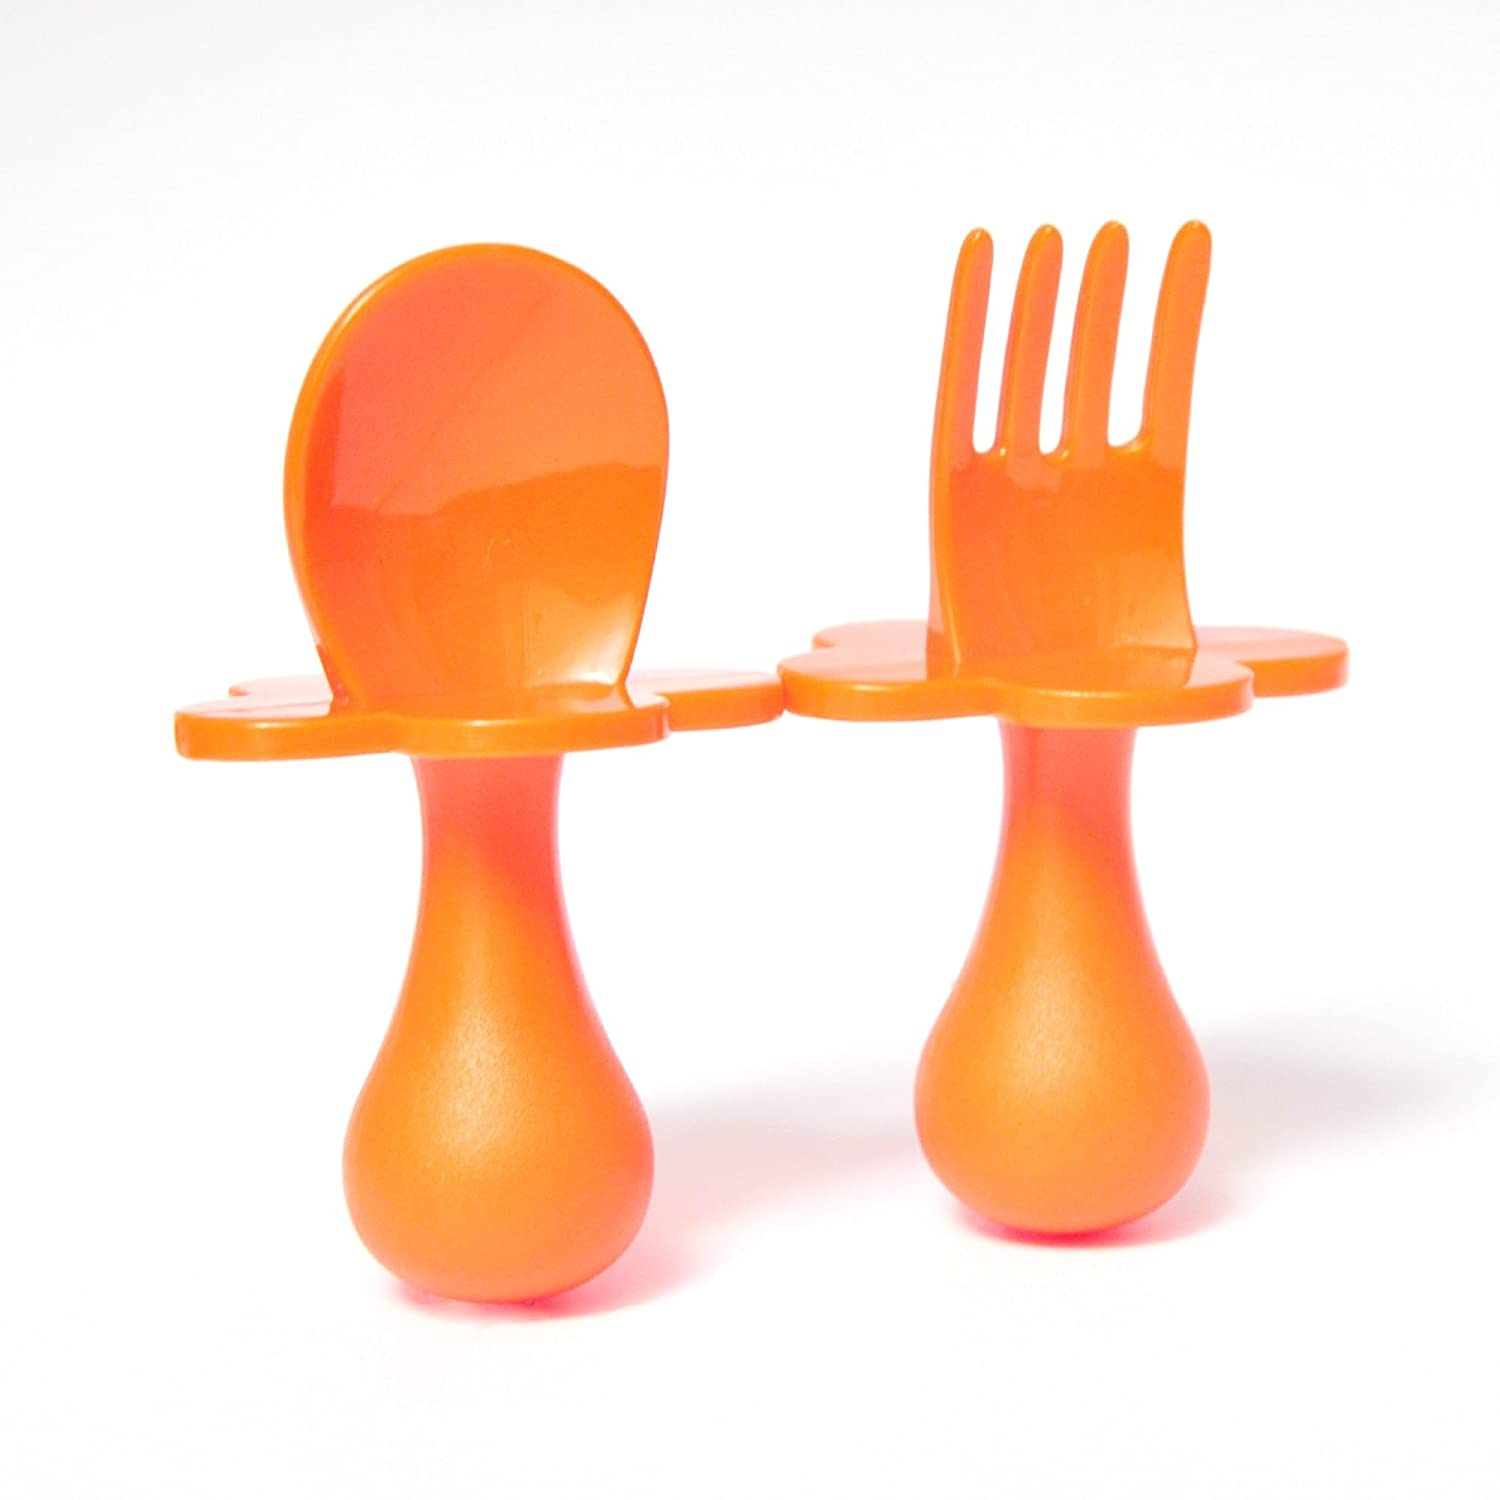 Grabease: Patented self-Feeding Baby Cutlery Set; Baby-led weaning Easy and Fun (Orange Set) Elli&Nooli